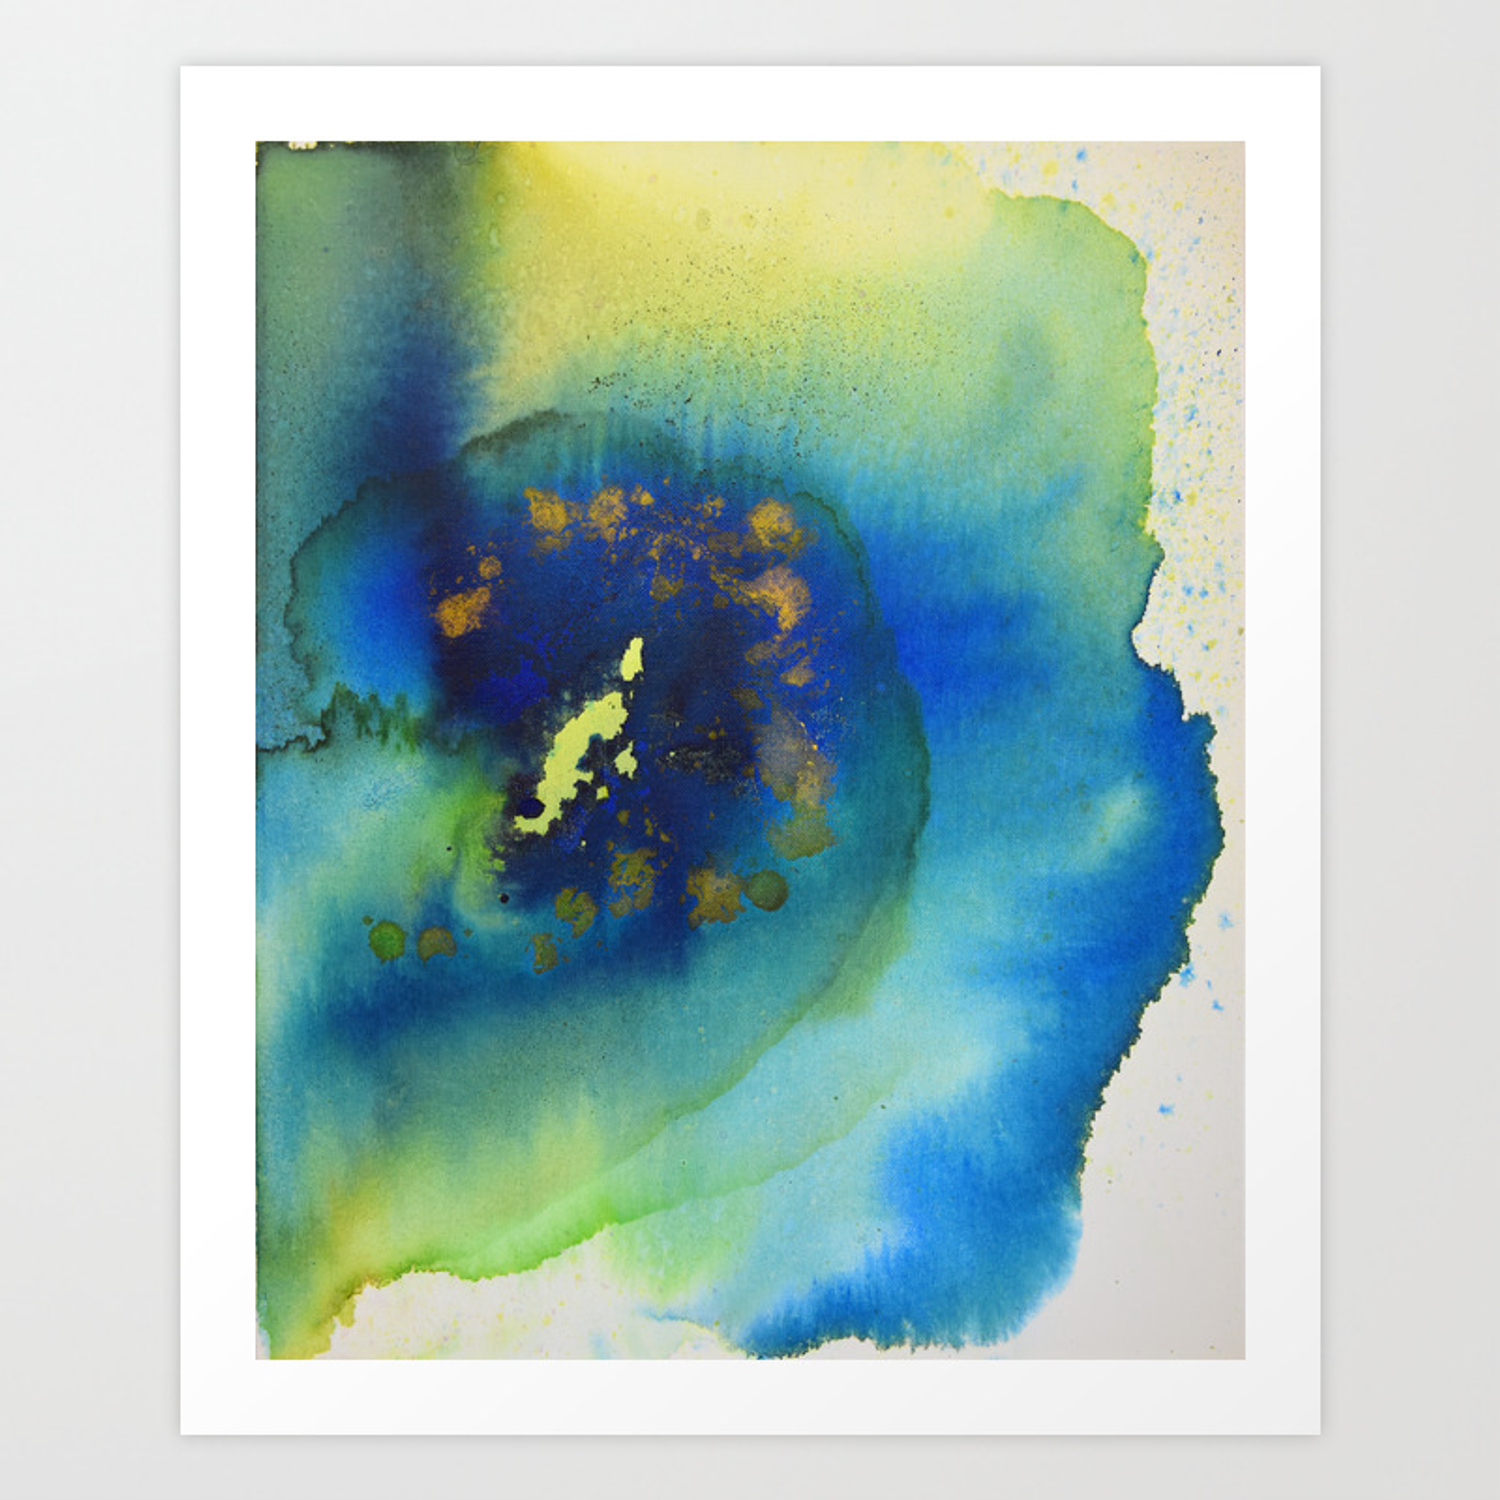 Green blue and gold abstract art print